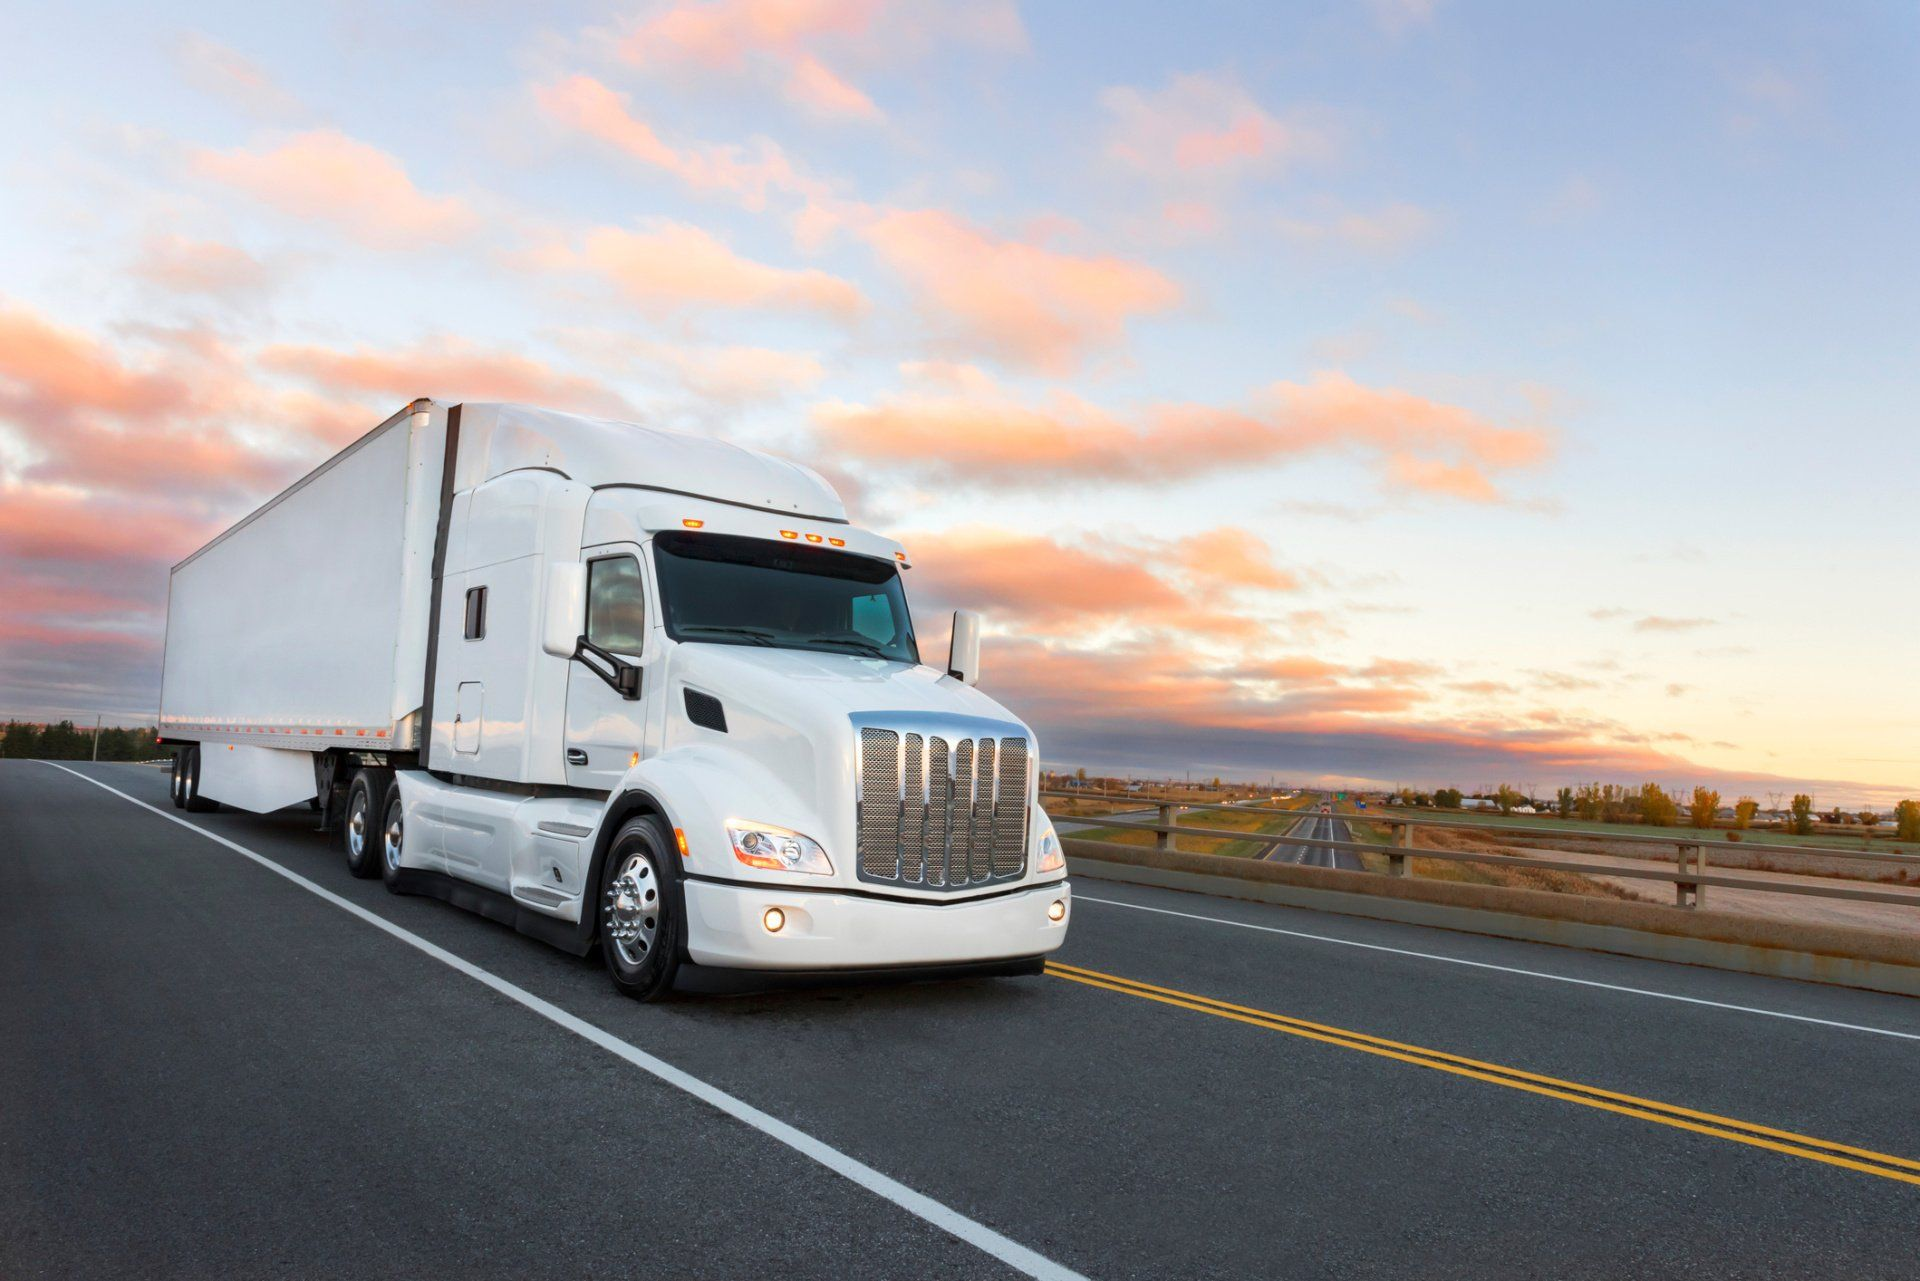 Crate Forwarding — Delivery Truck in W. Palm Beach, FL